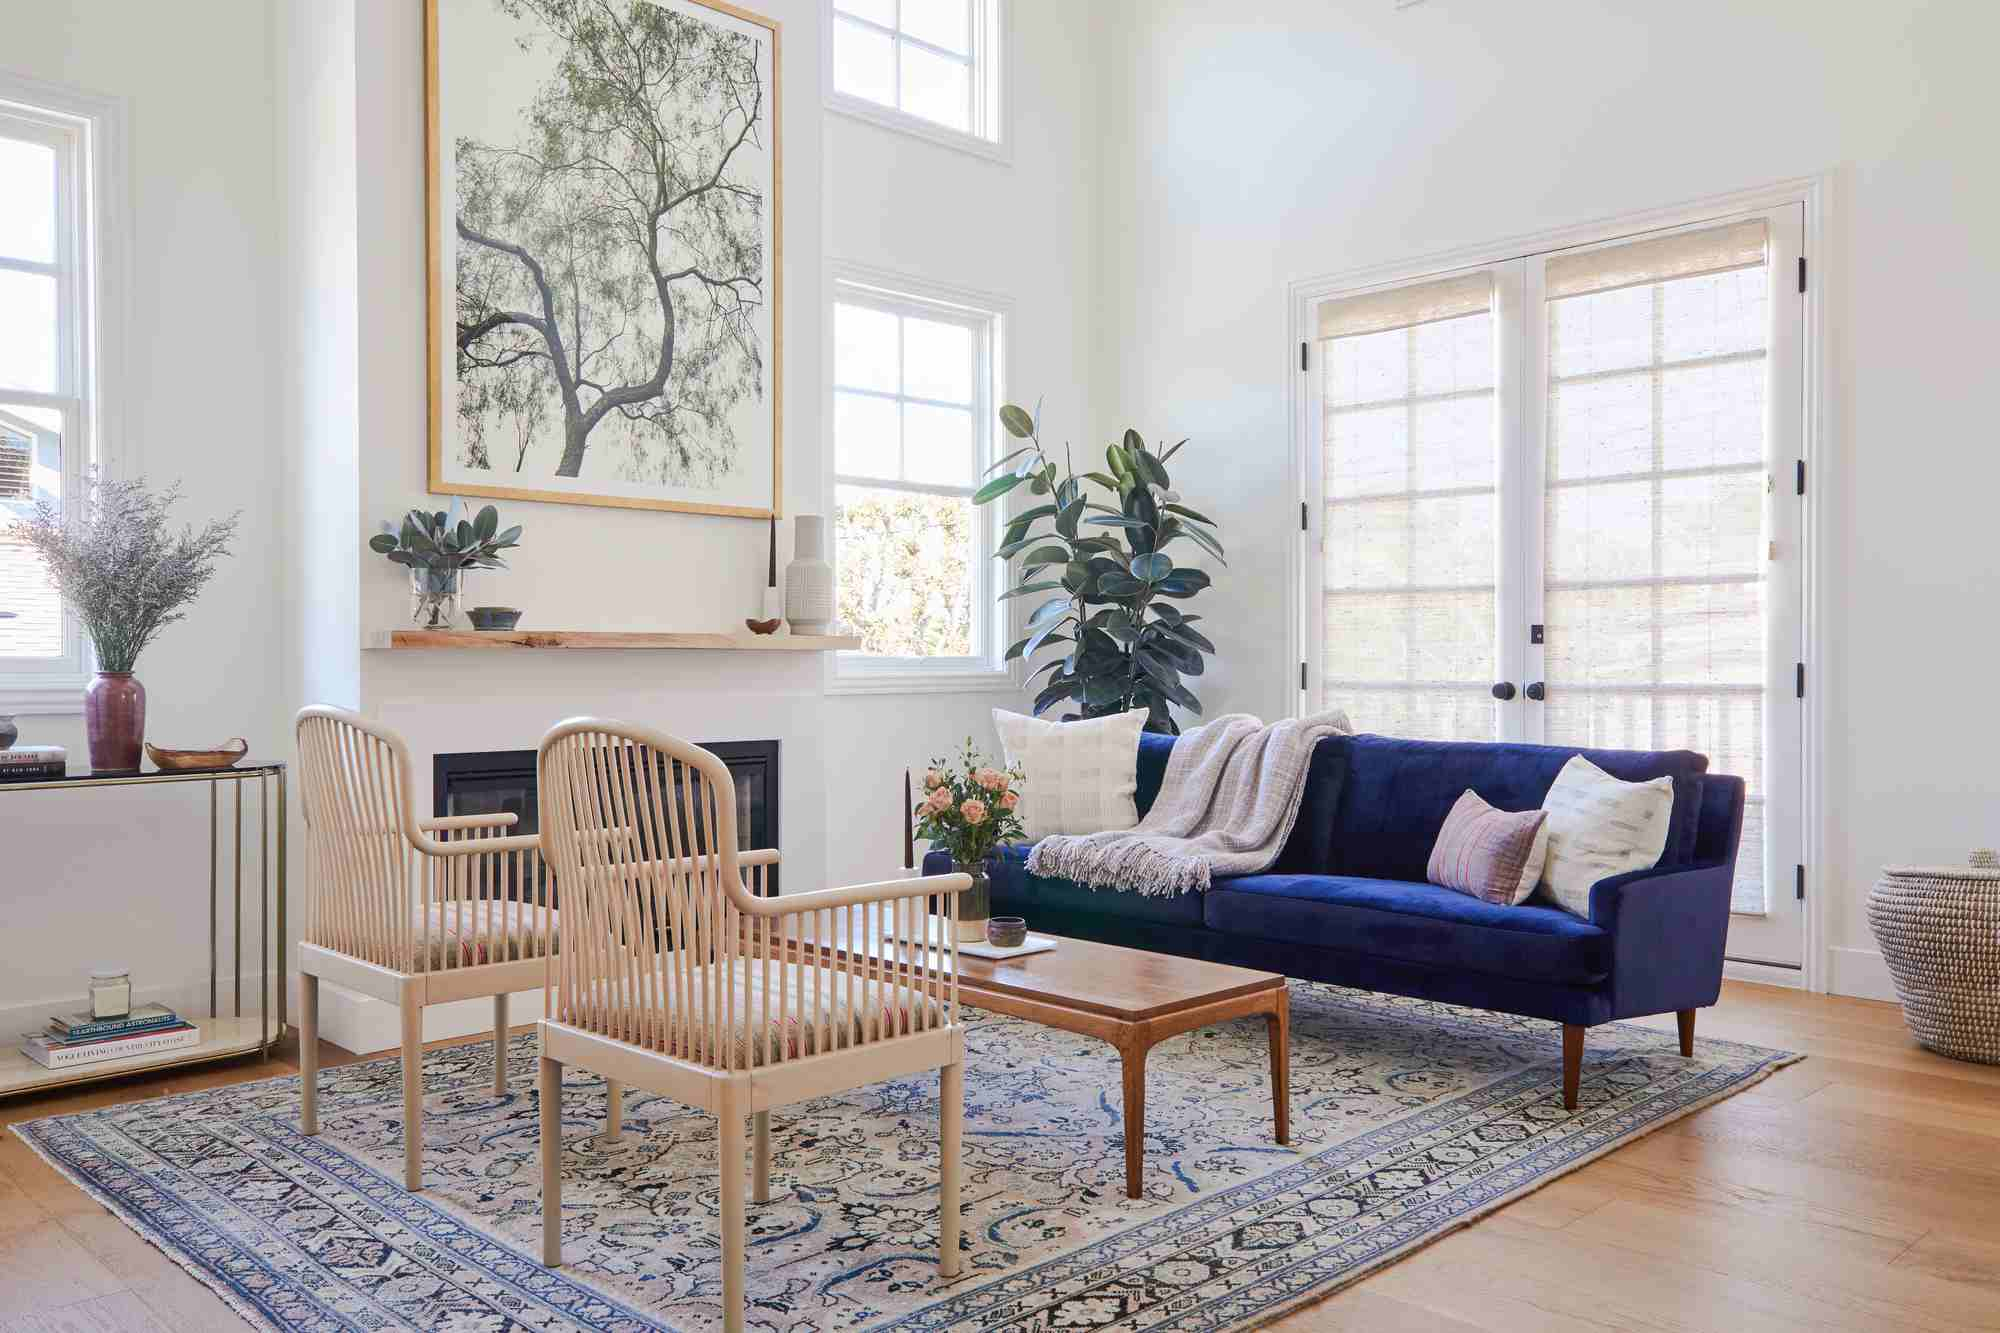 5 Small Living Room Mistakes That Make Designers Cringe